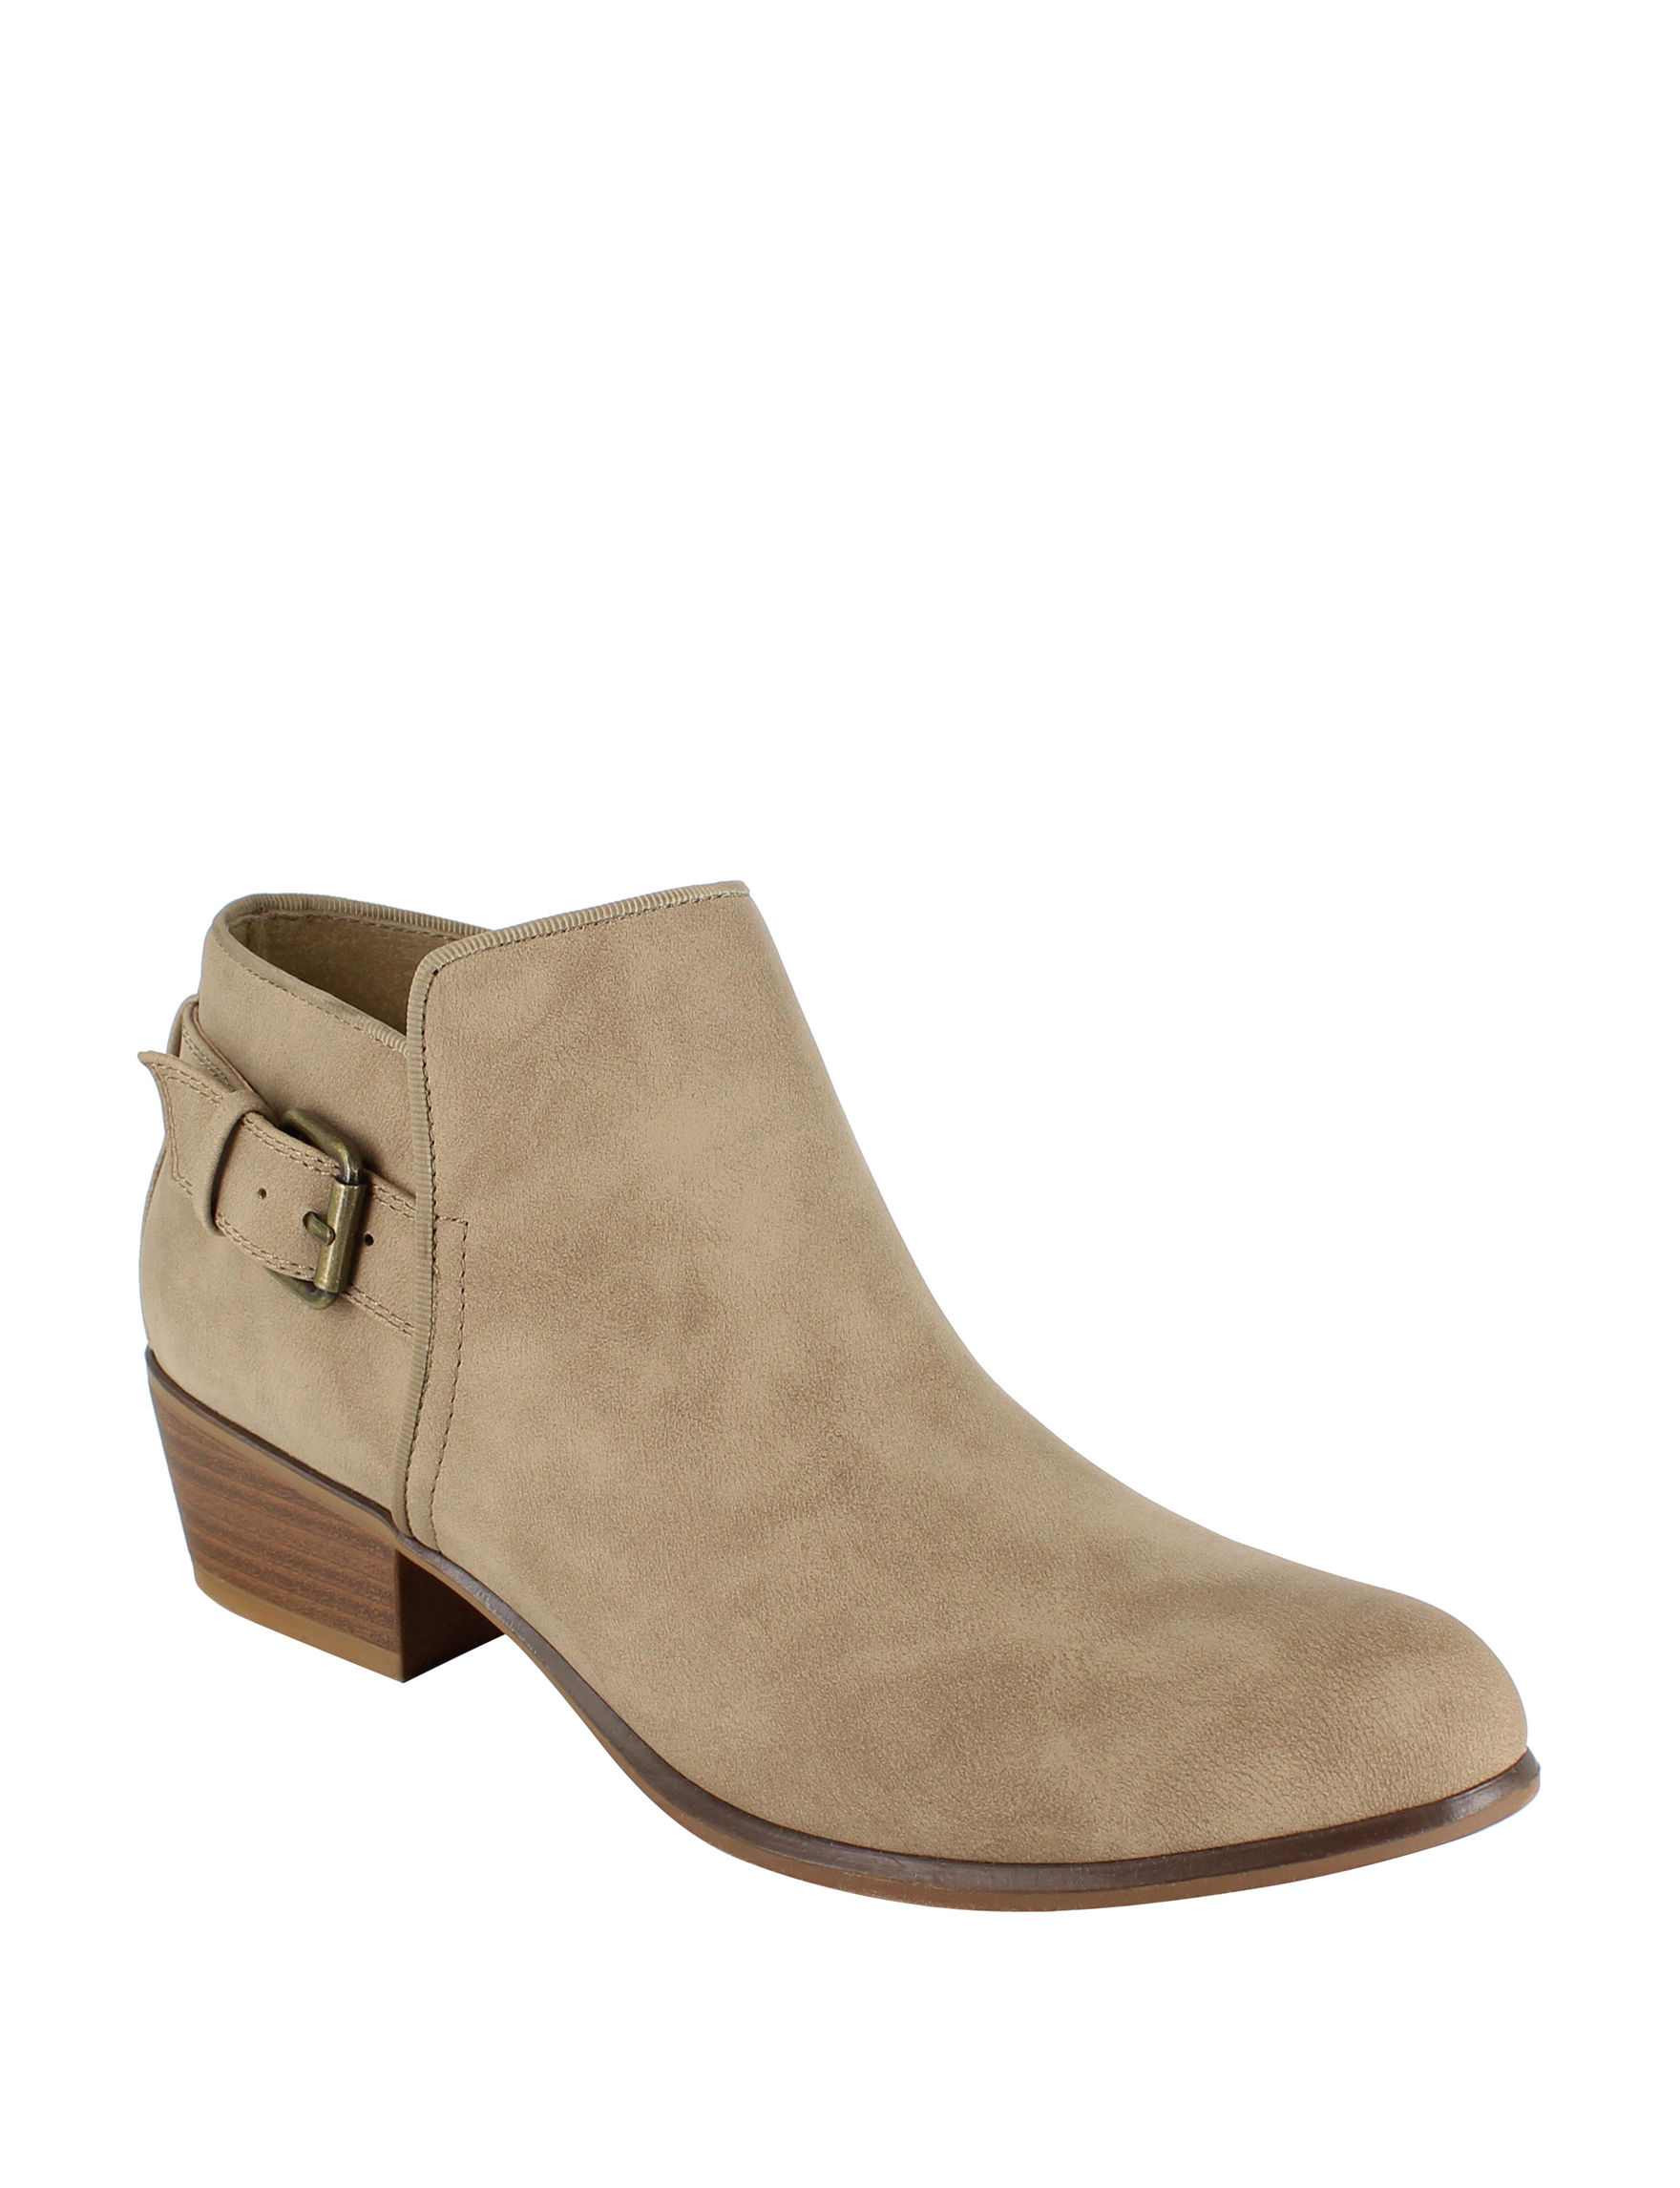 Esprit Taupe Ankle Boots & Booties